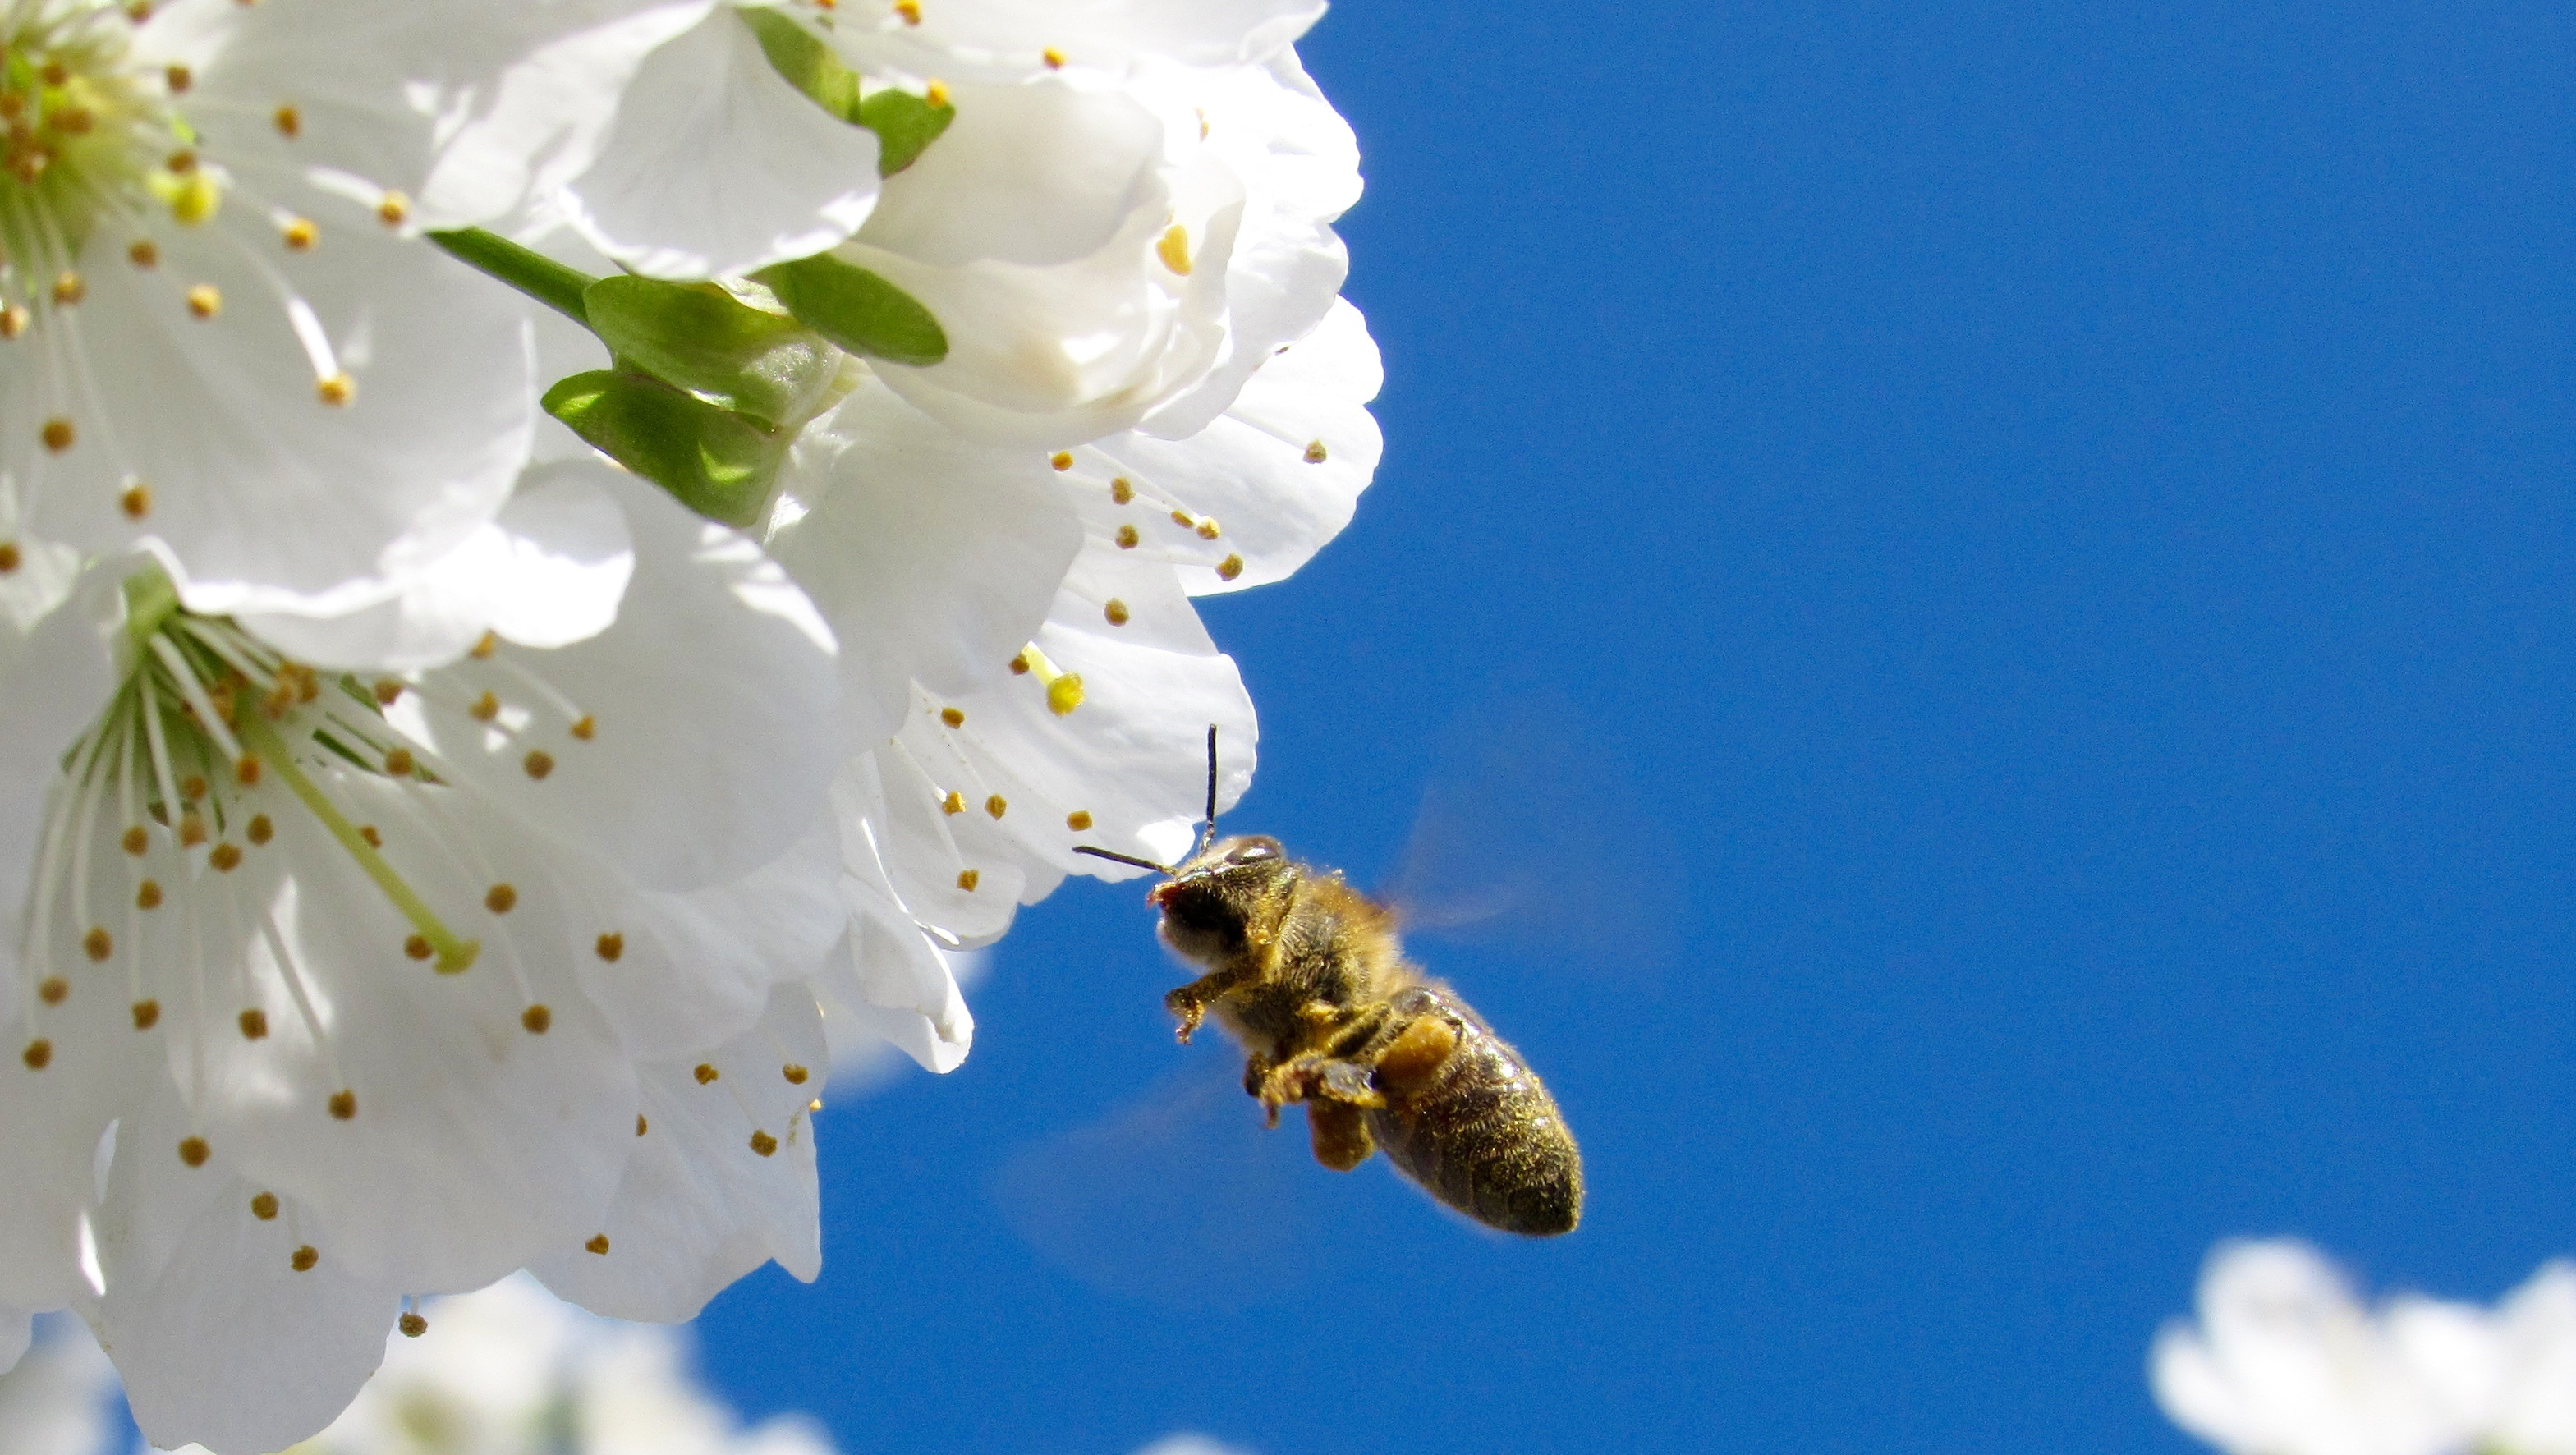 Nature, Bee, Flower, Fly, Fragrance, HQ Photo